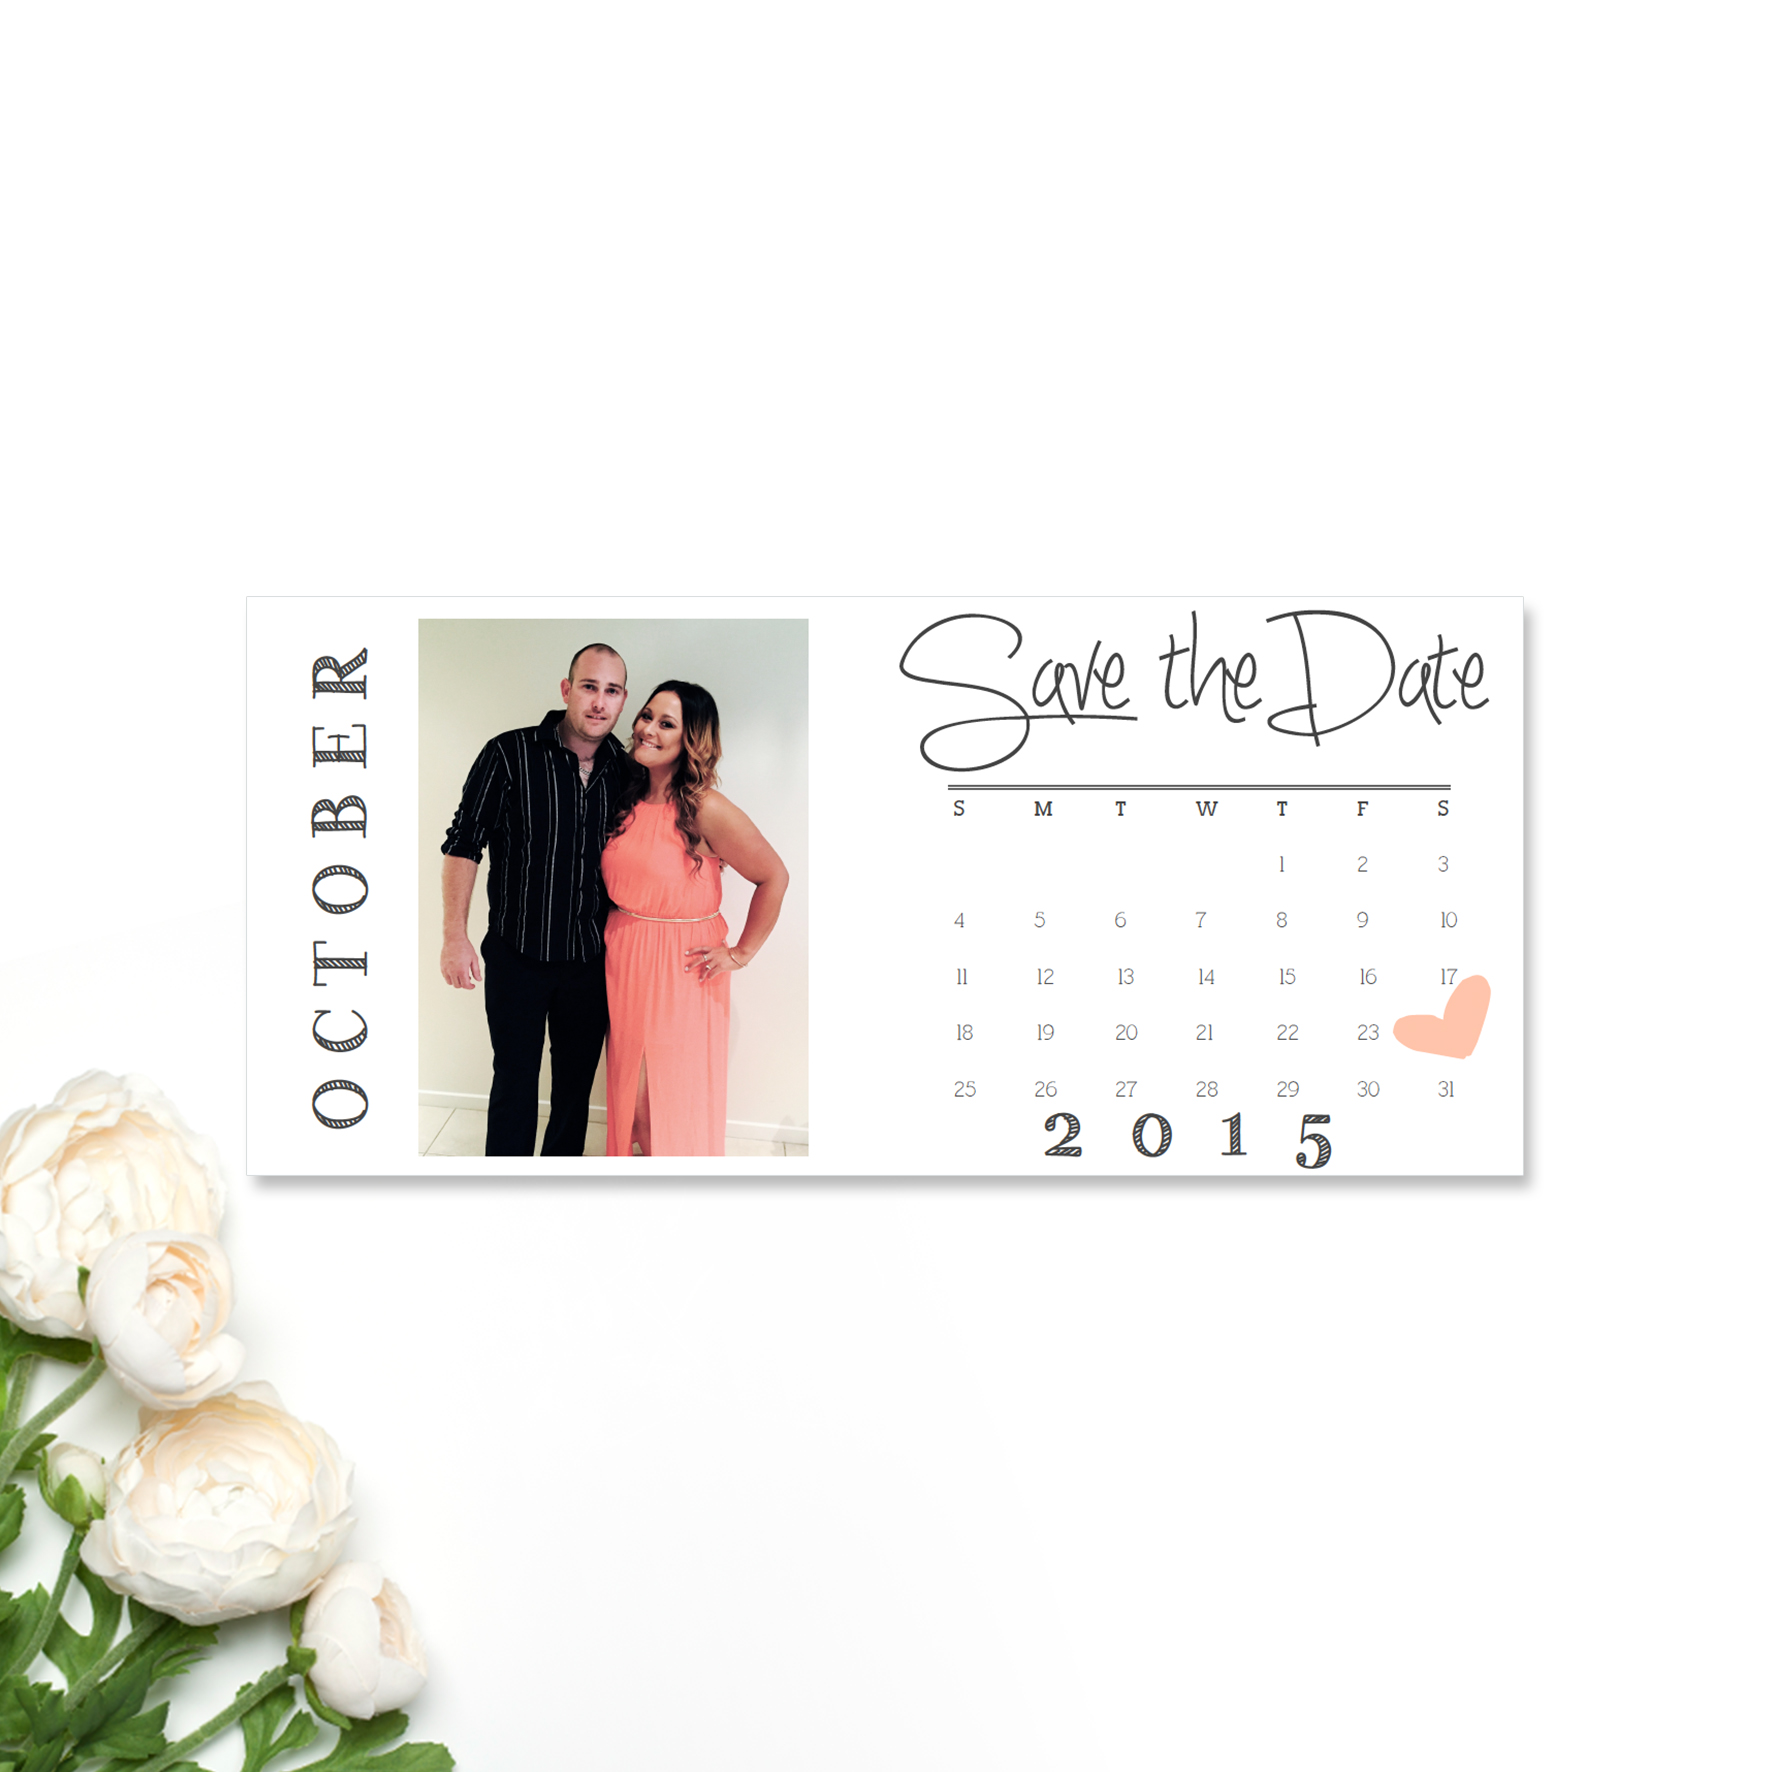 Jess + Chris Save the Date Card